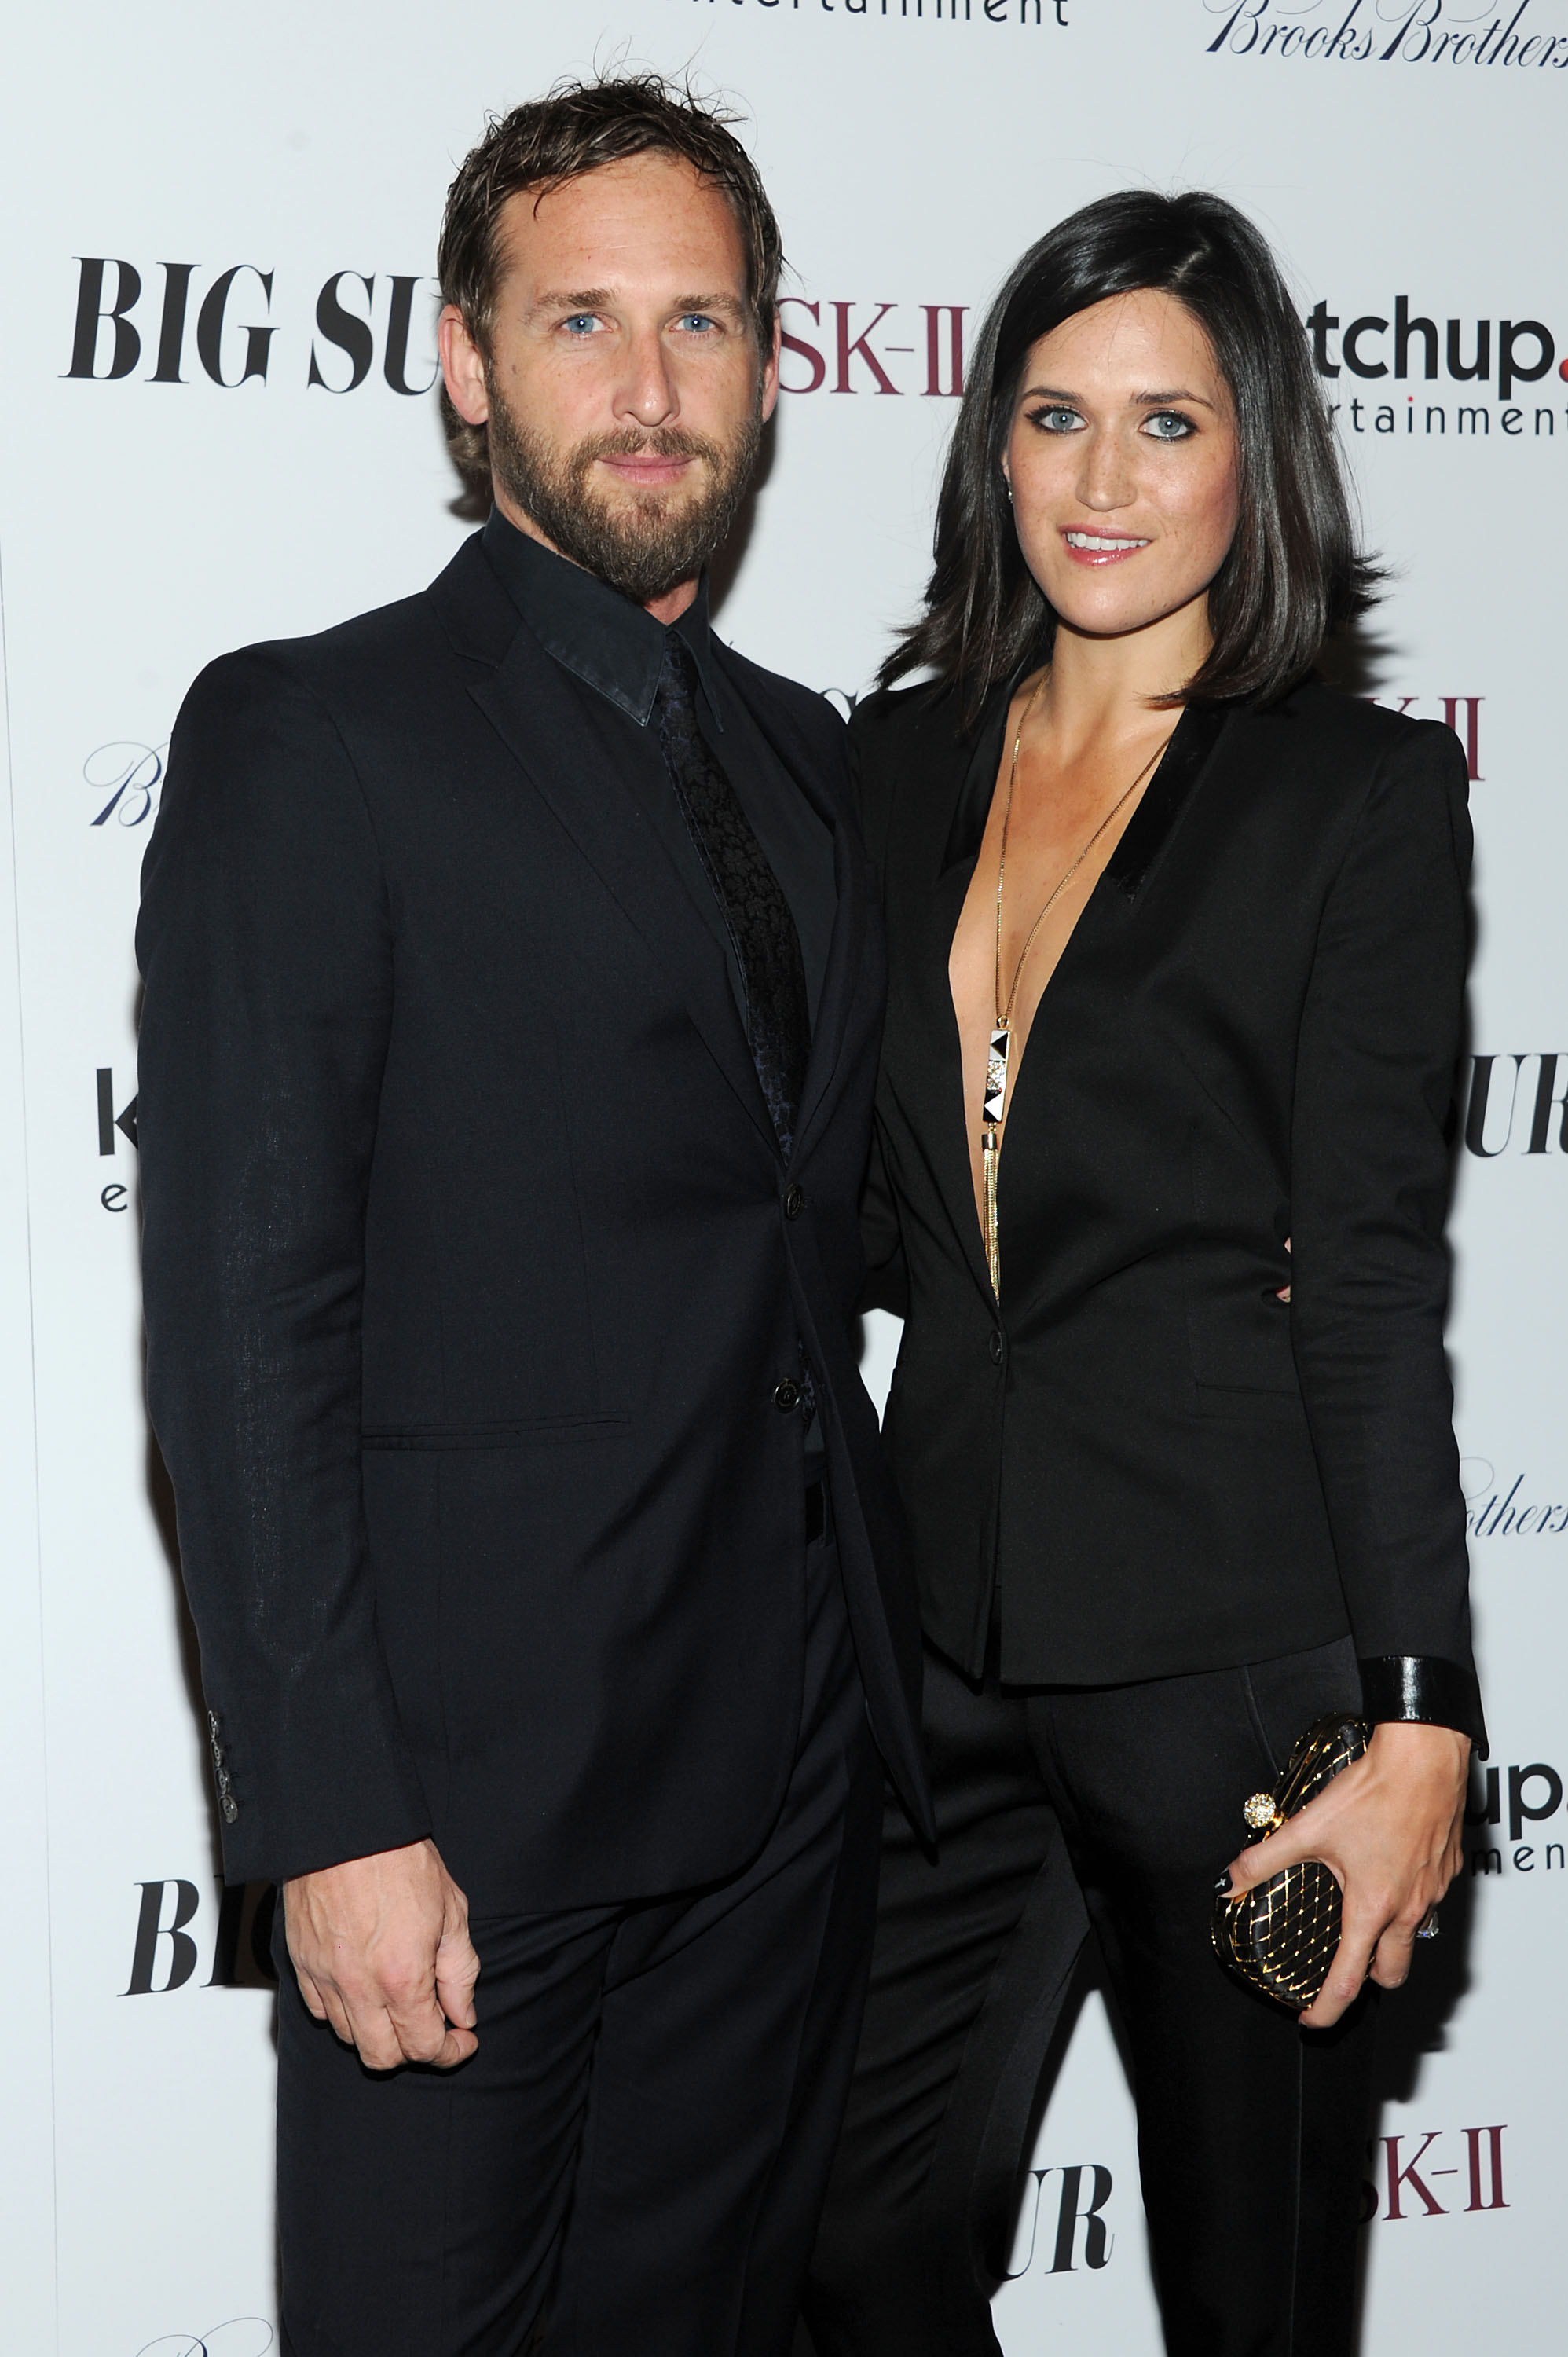 Josh Lucas' ex Jessica Ciencin Henriquez - who had a date with Armie in September - condemned him